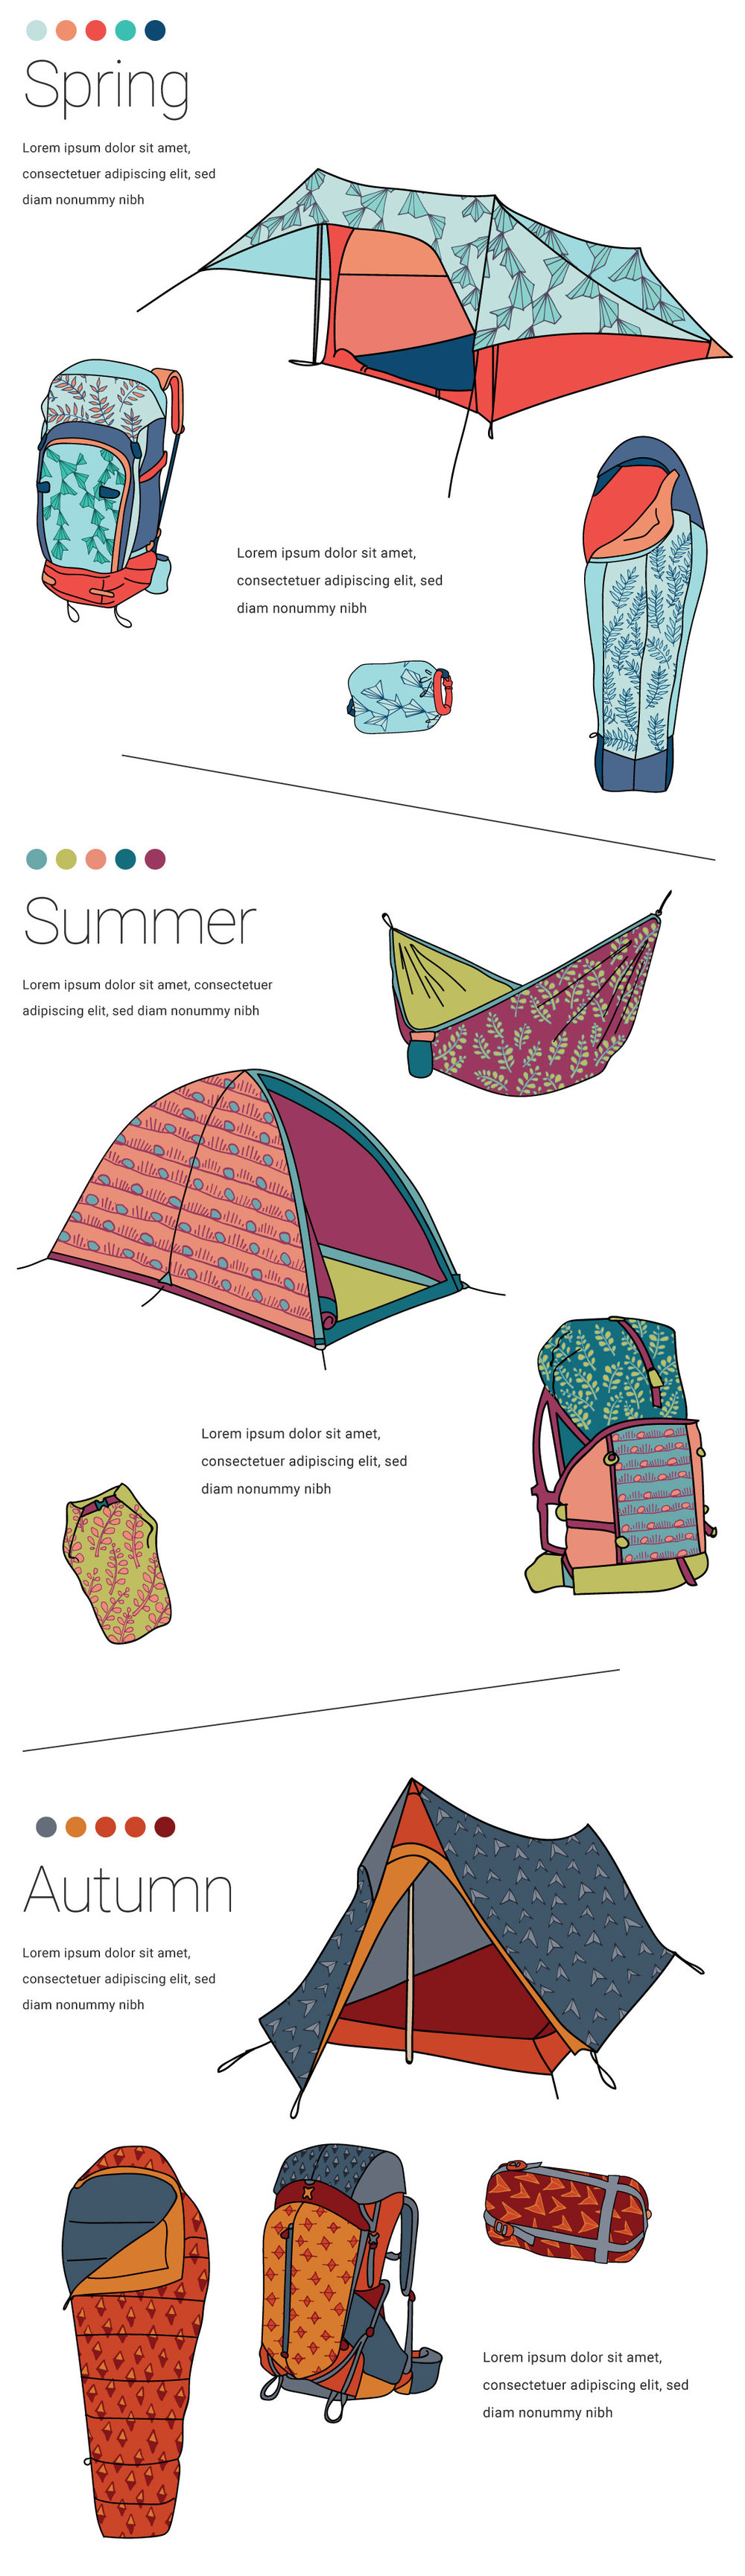 tents-large-new.jpg